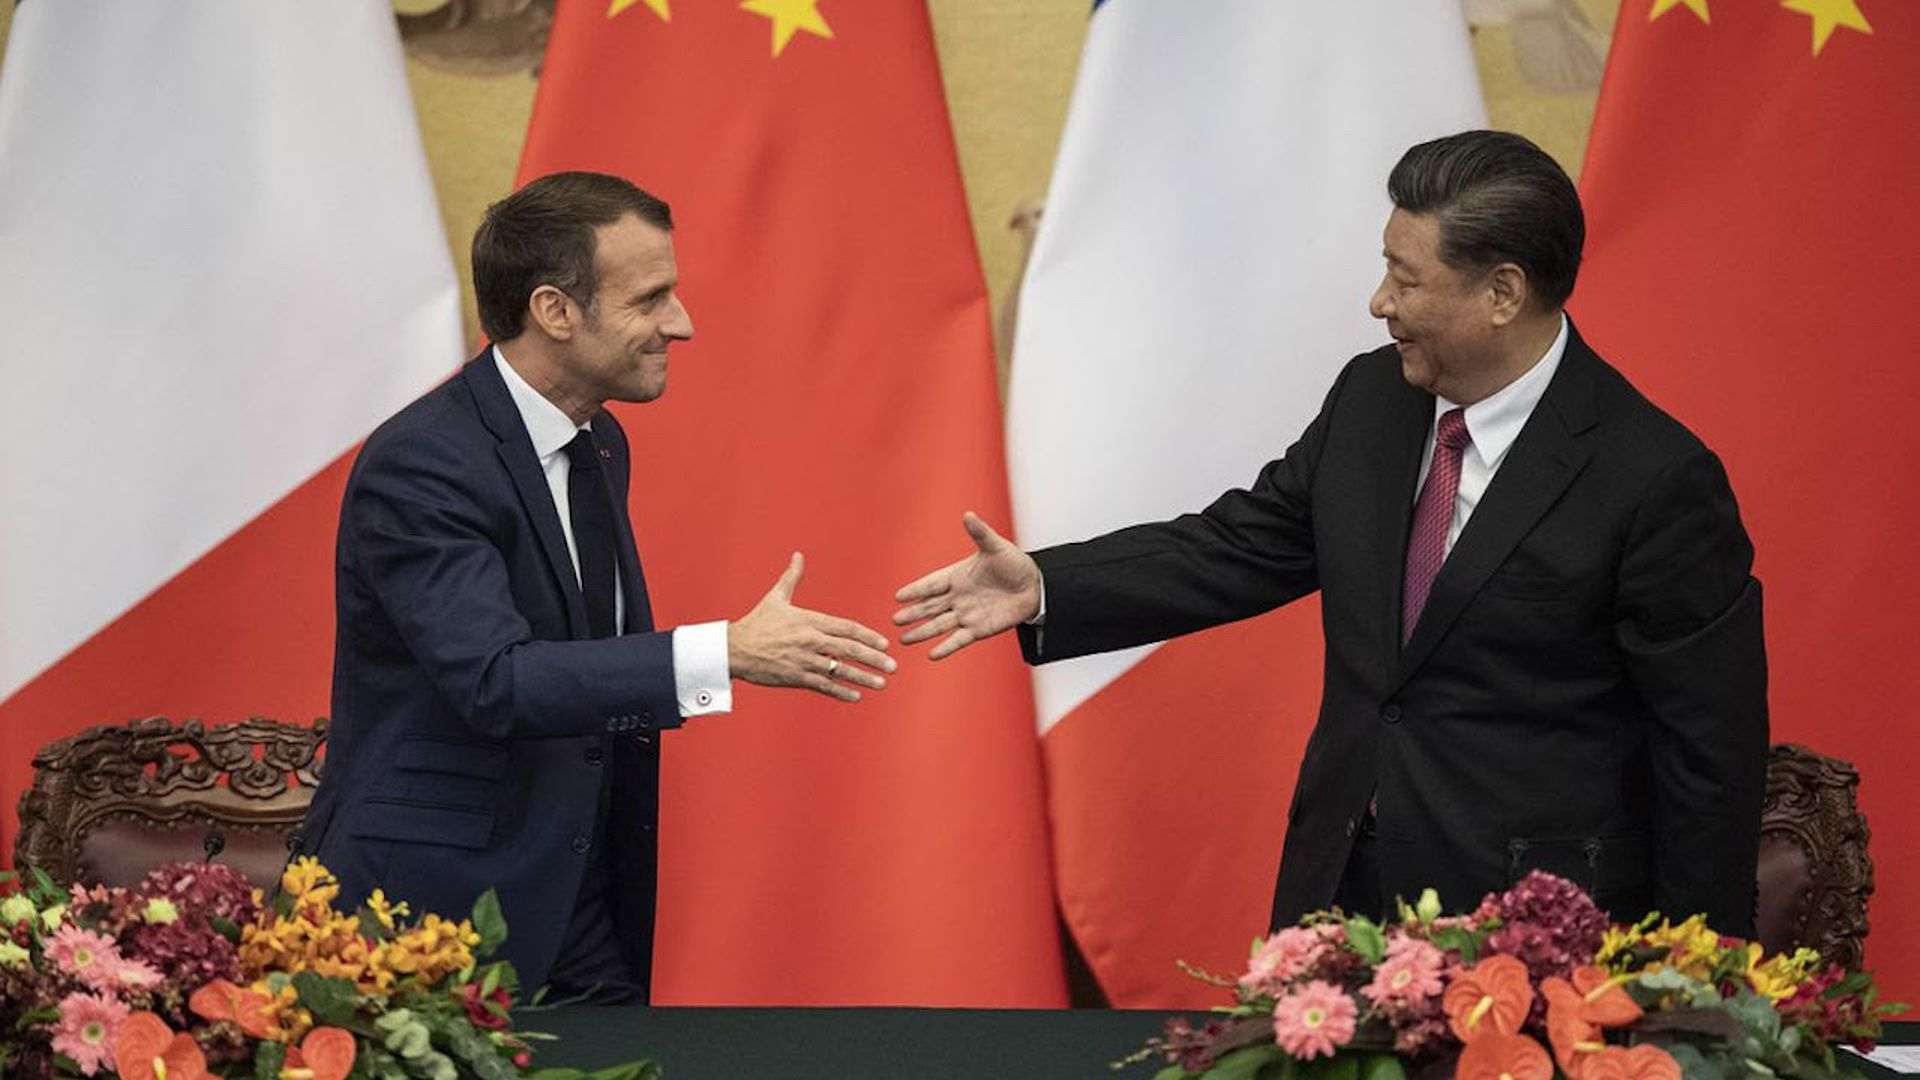 French President Macron shakes hands with Chinese President Xi